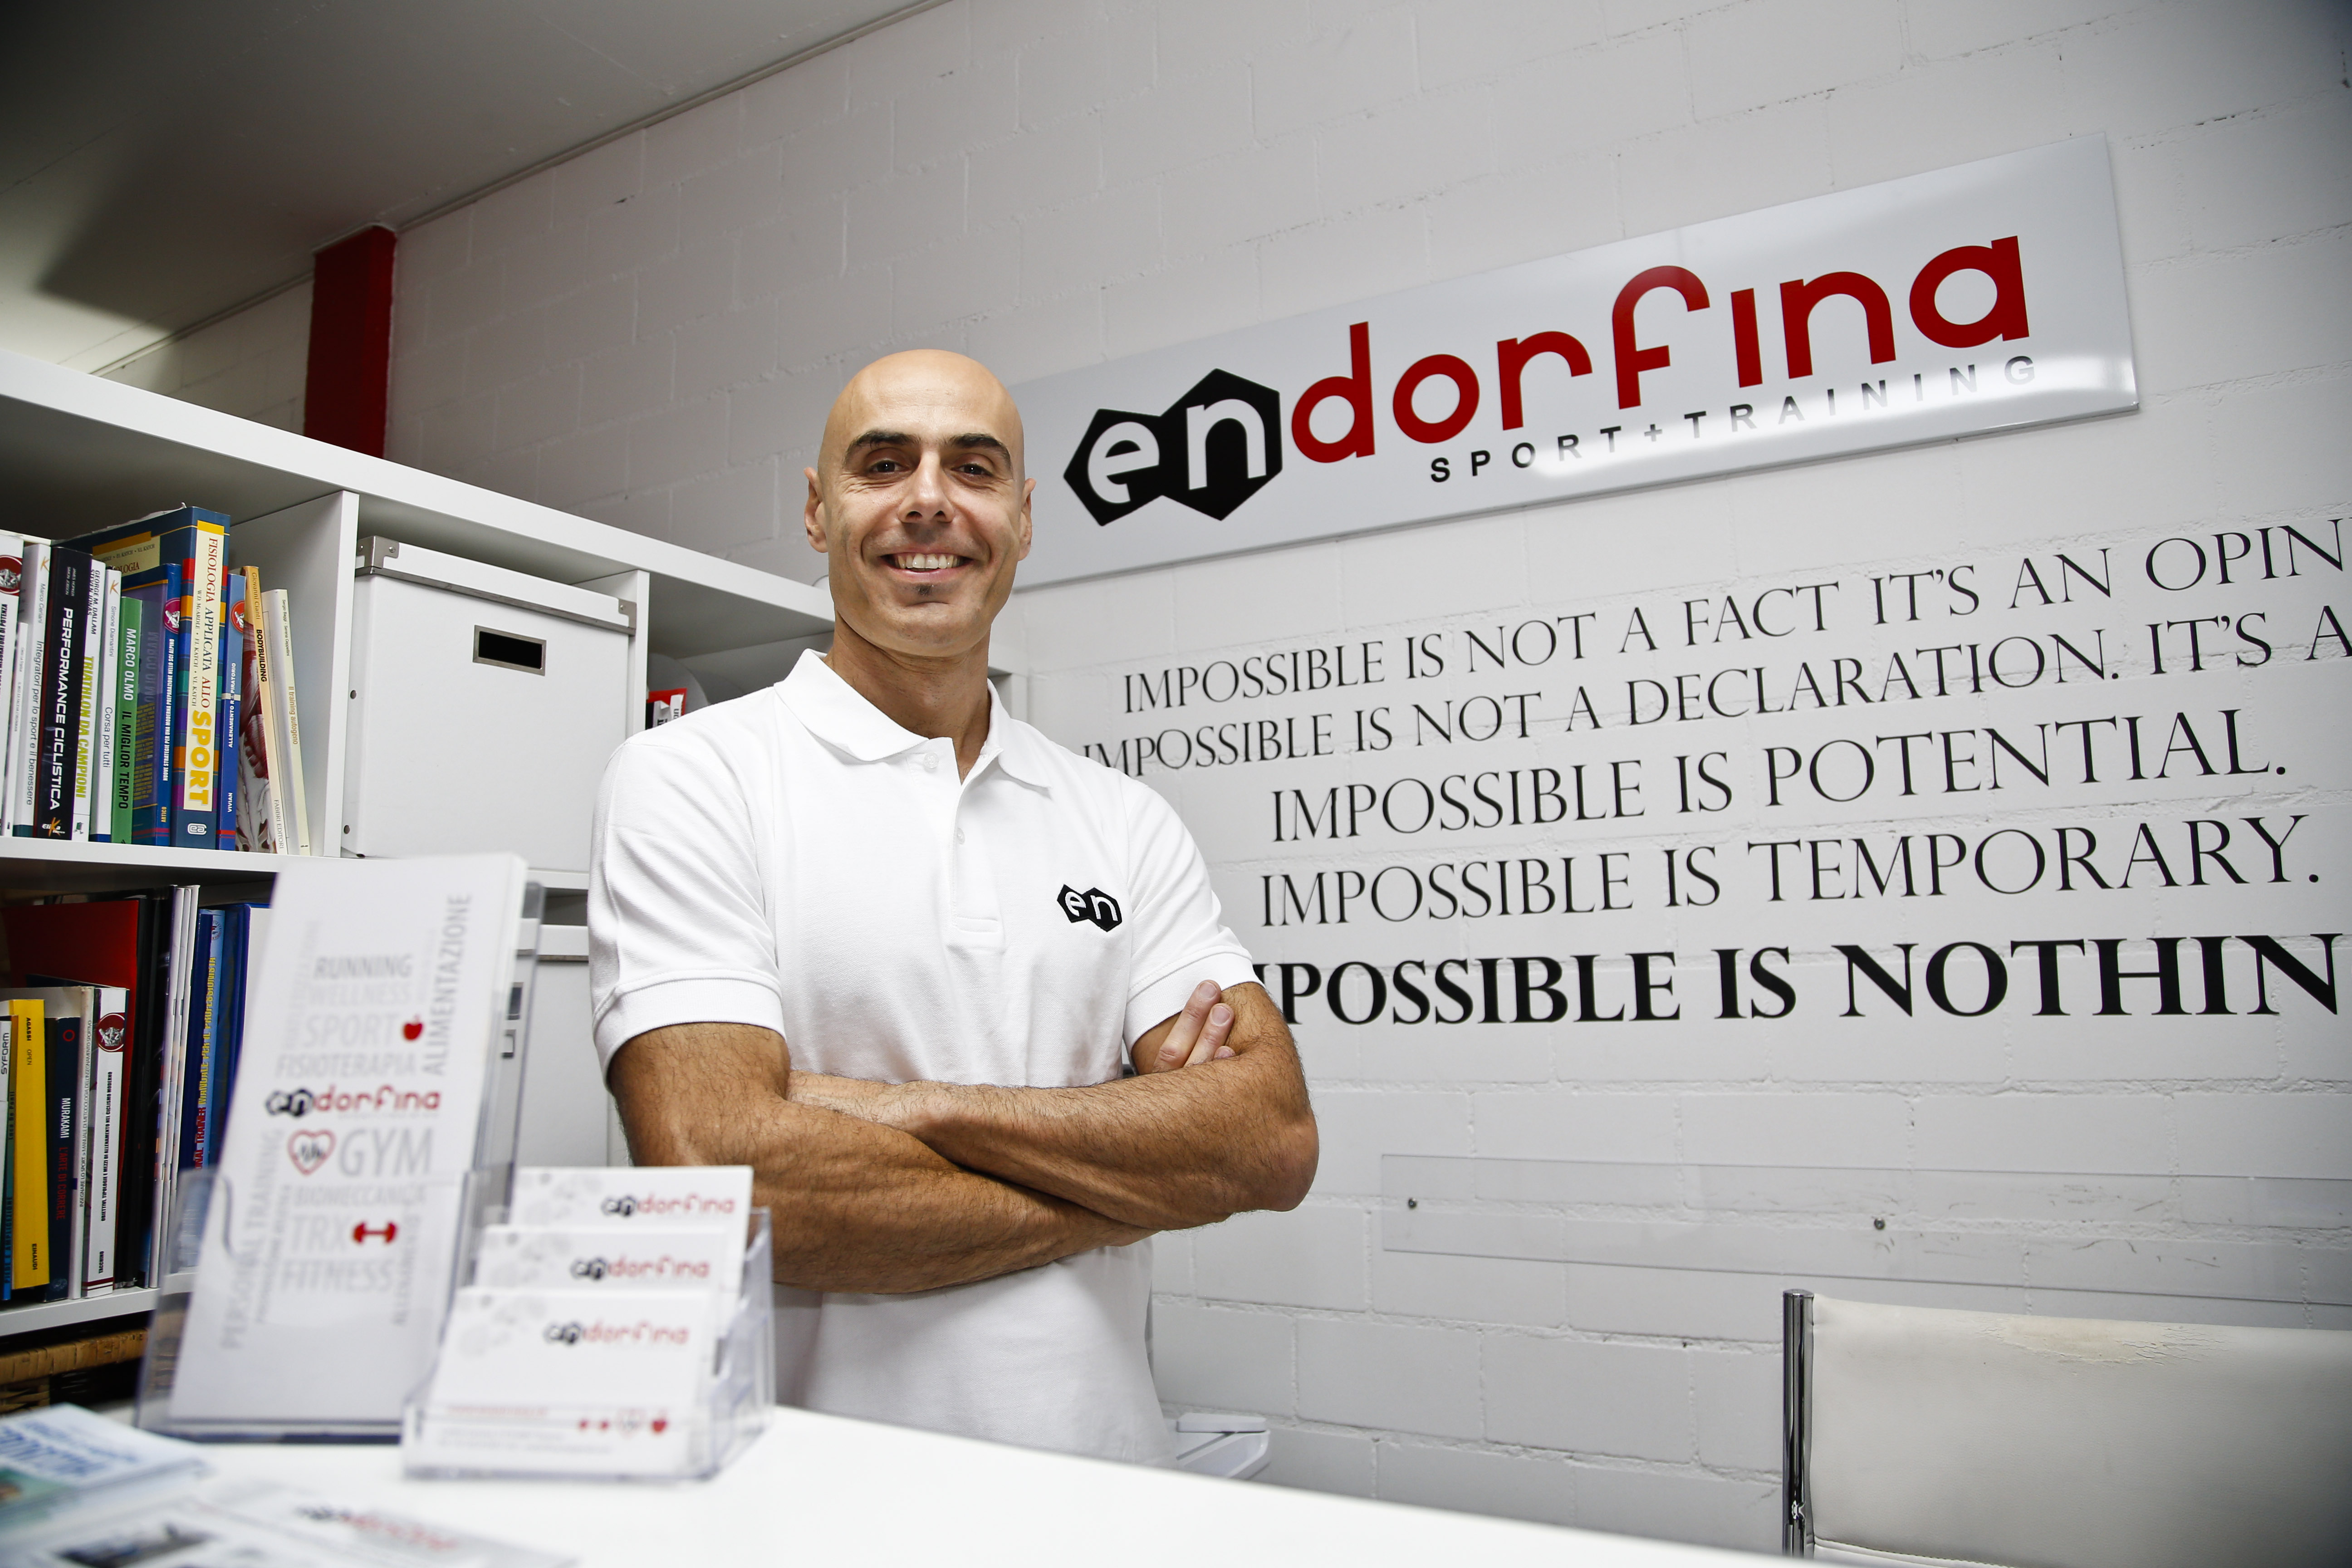 You are currently viewing ENDURANCE COACHING by                                   Endorfina Sport + Training